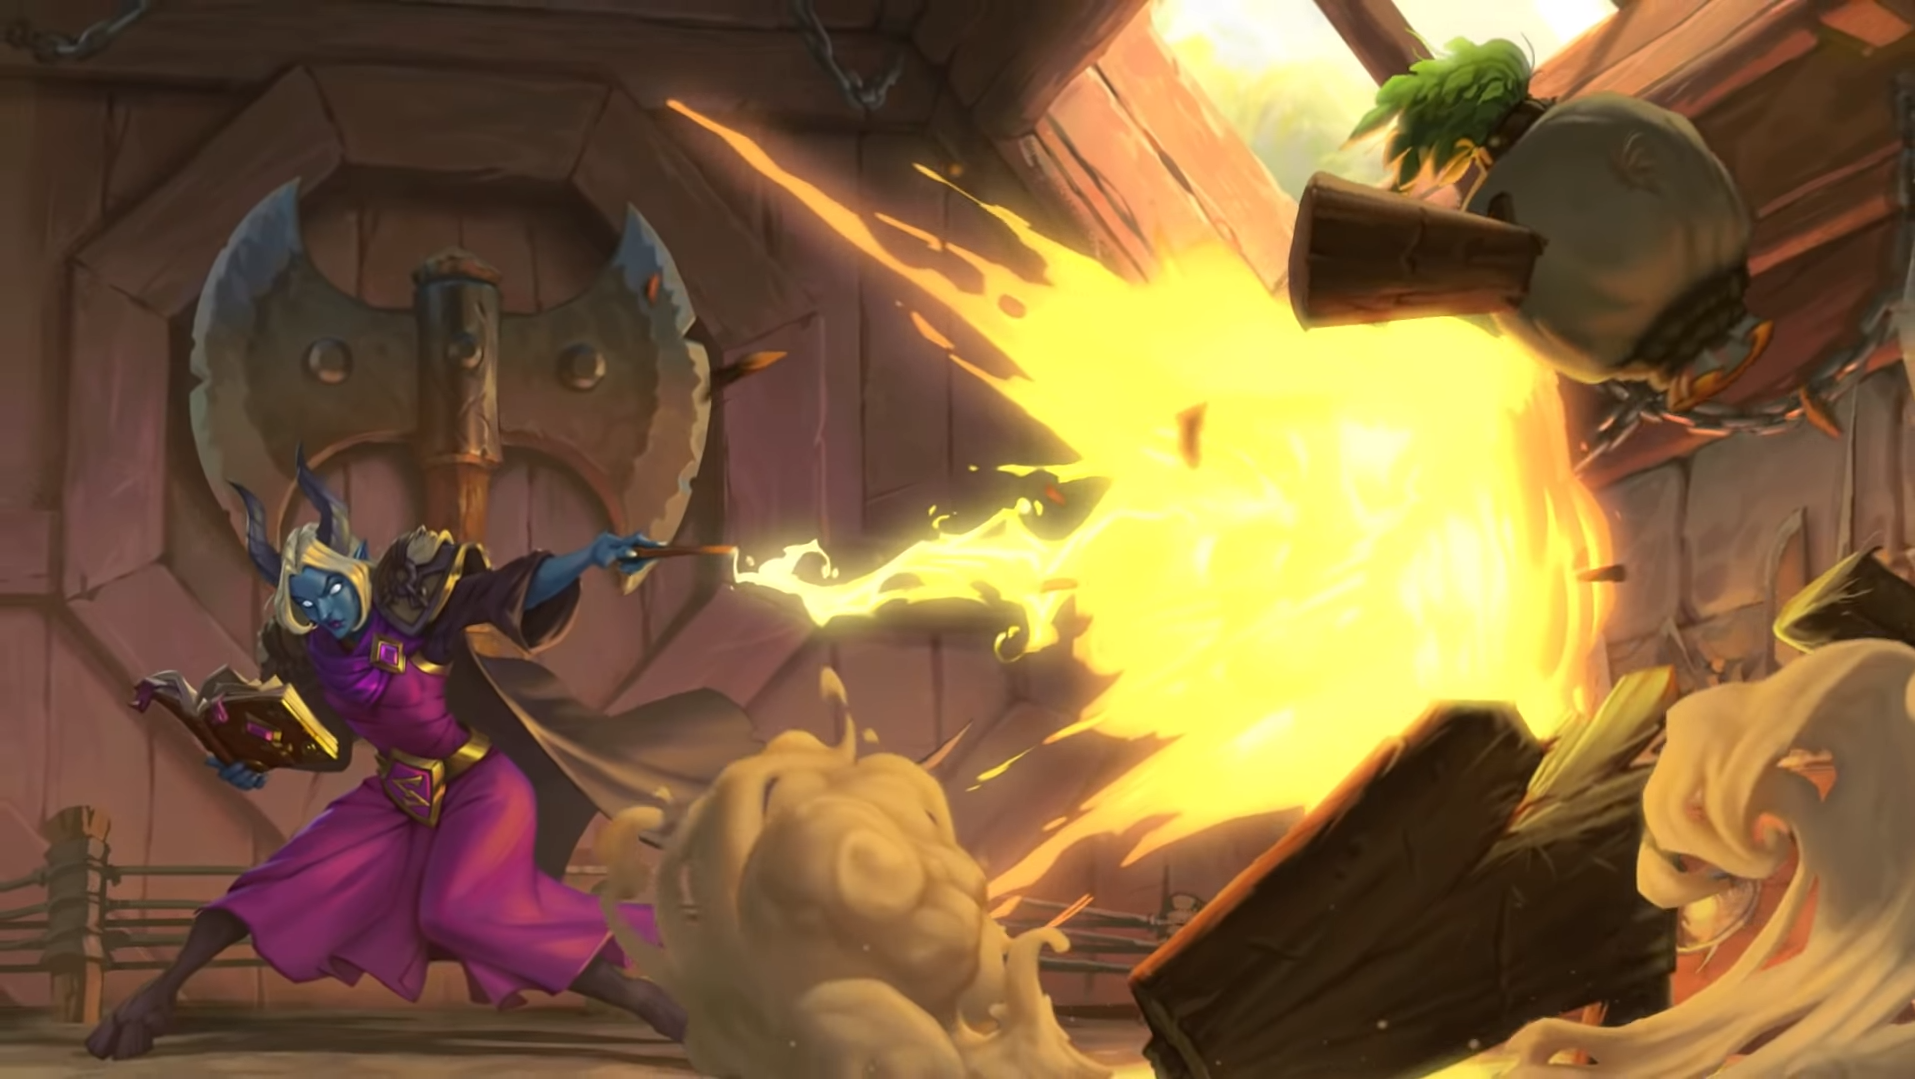 Hearthstone mage casts a Spellburst spell at a dummy in Scholomance Academy.